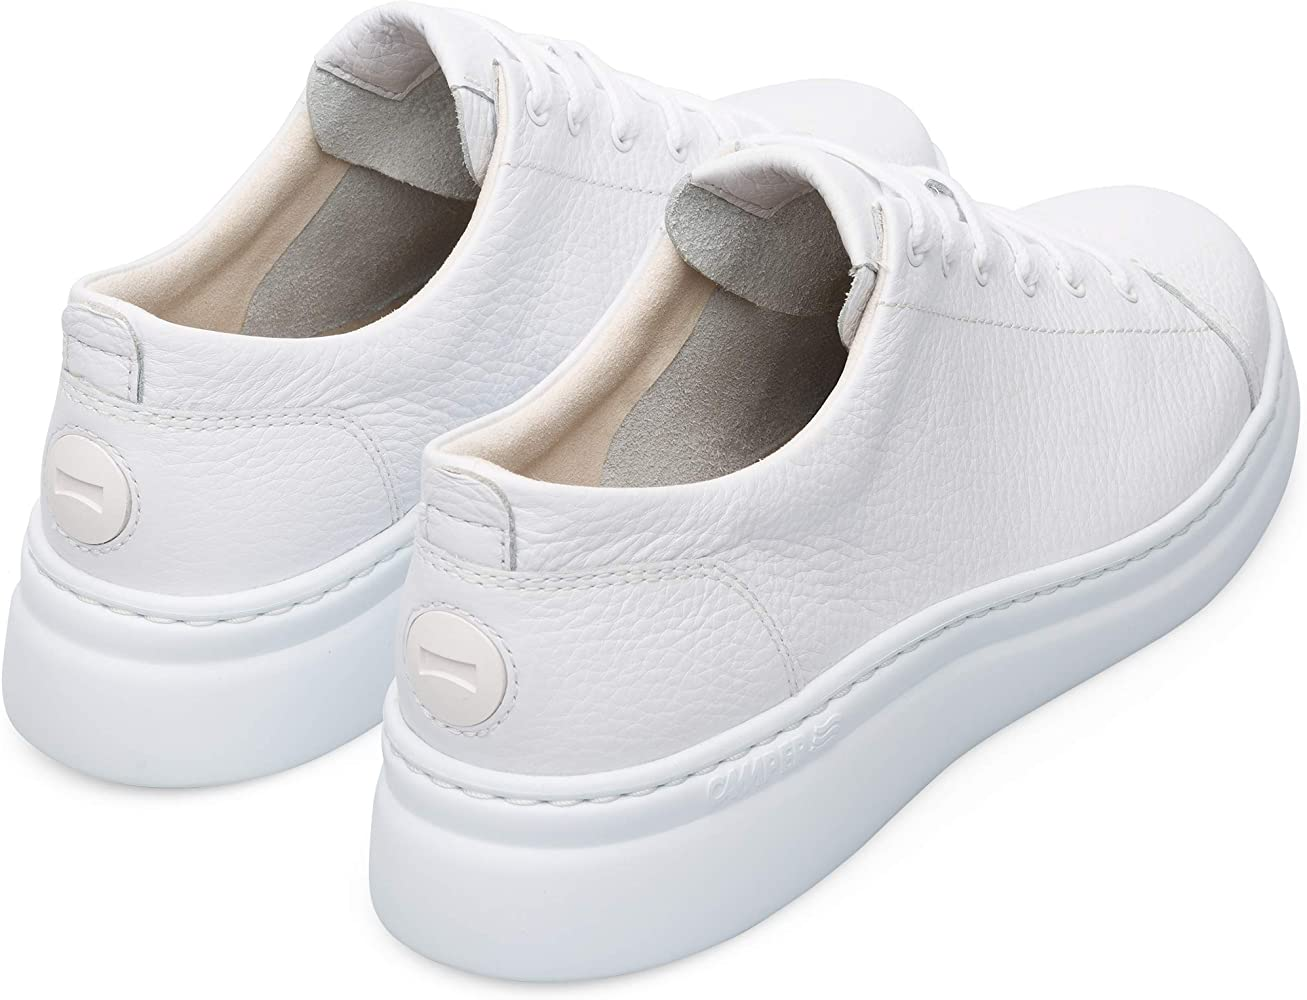 0ff92fb254aa Camper Runner Up, Sneakers Basses Femme, Blanc (White Natural 100 ...